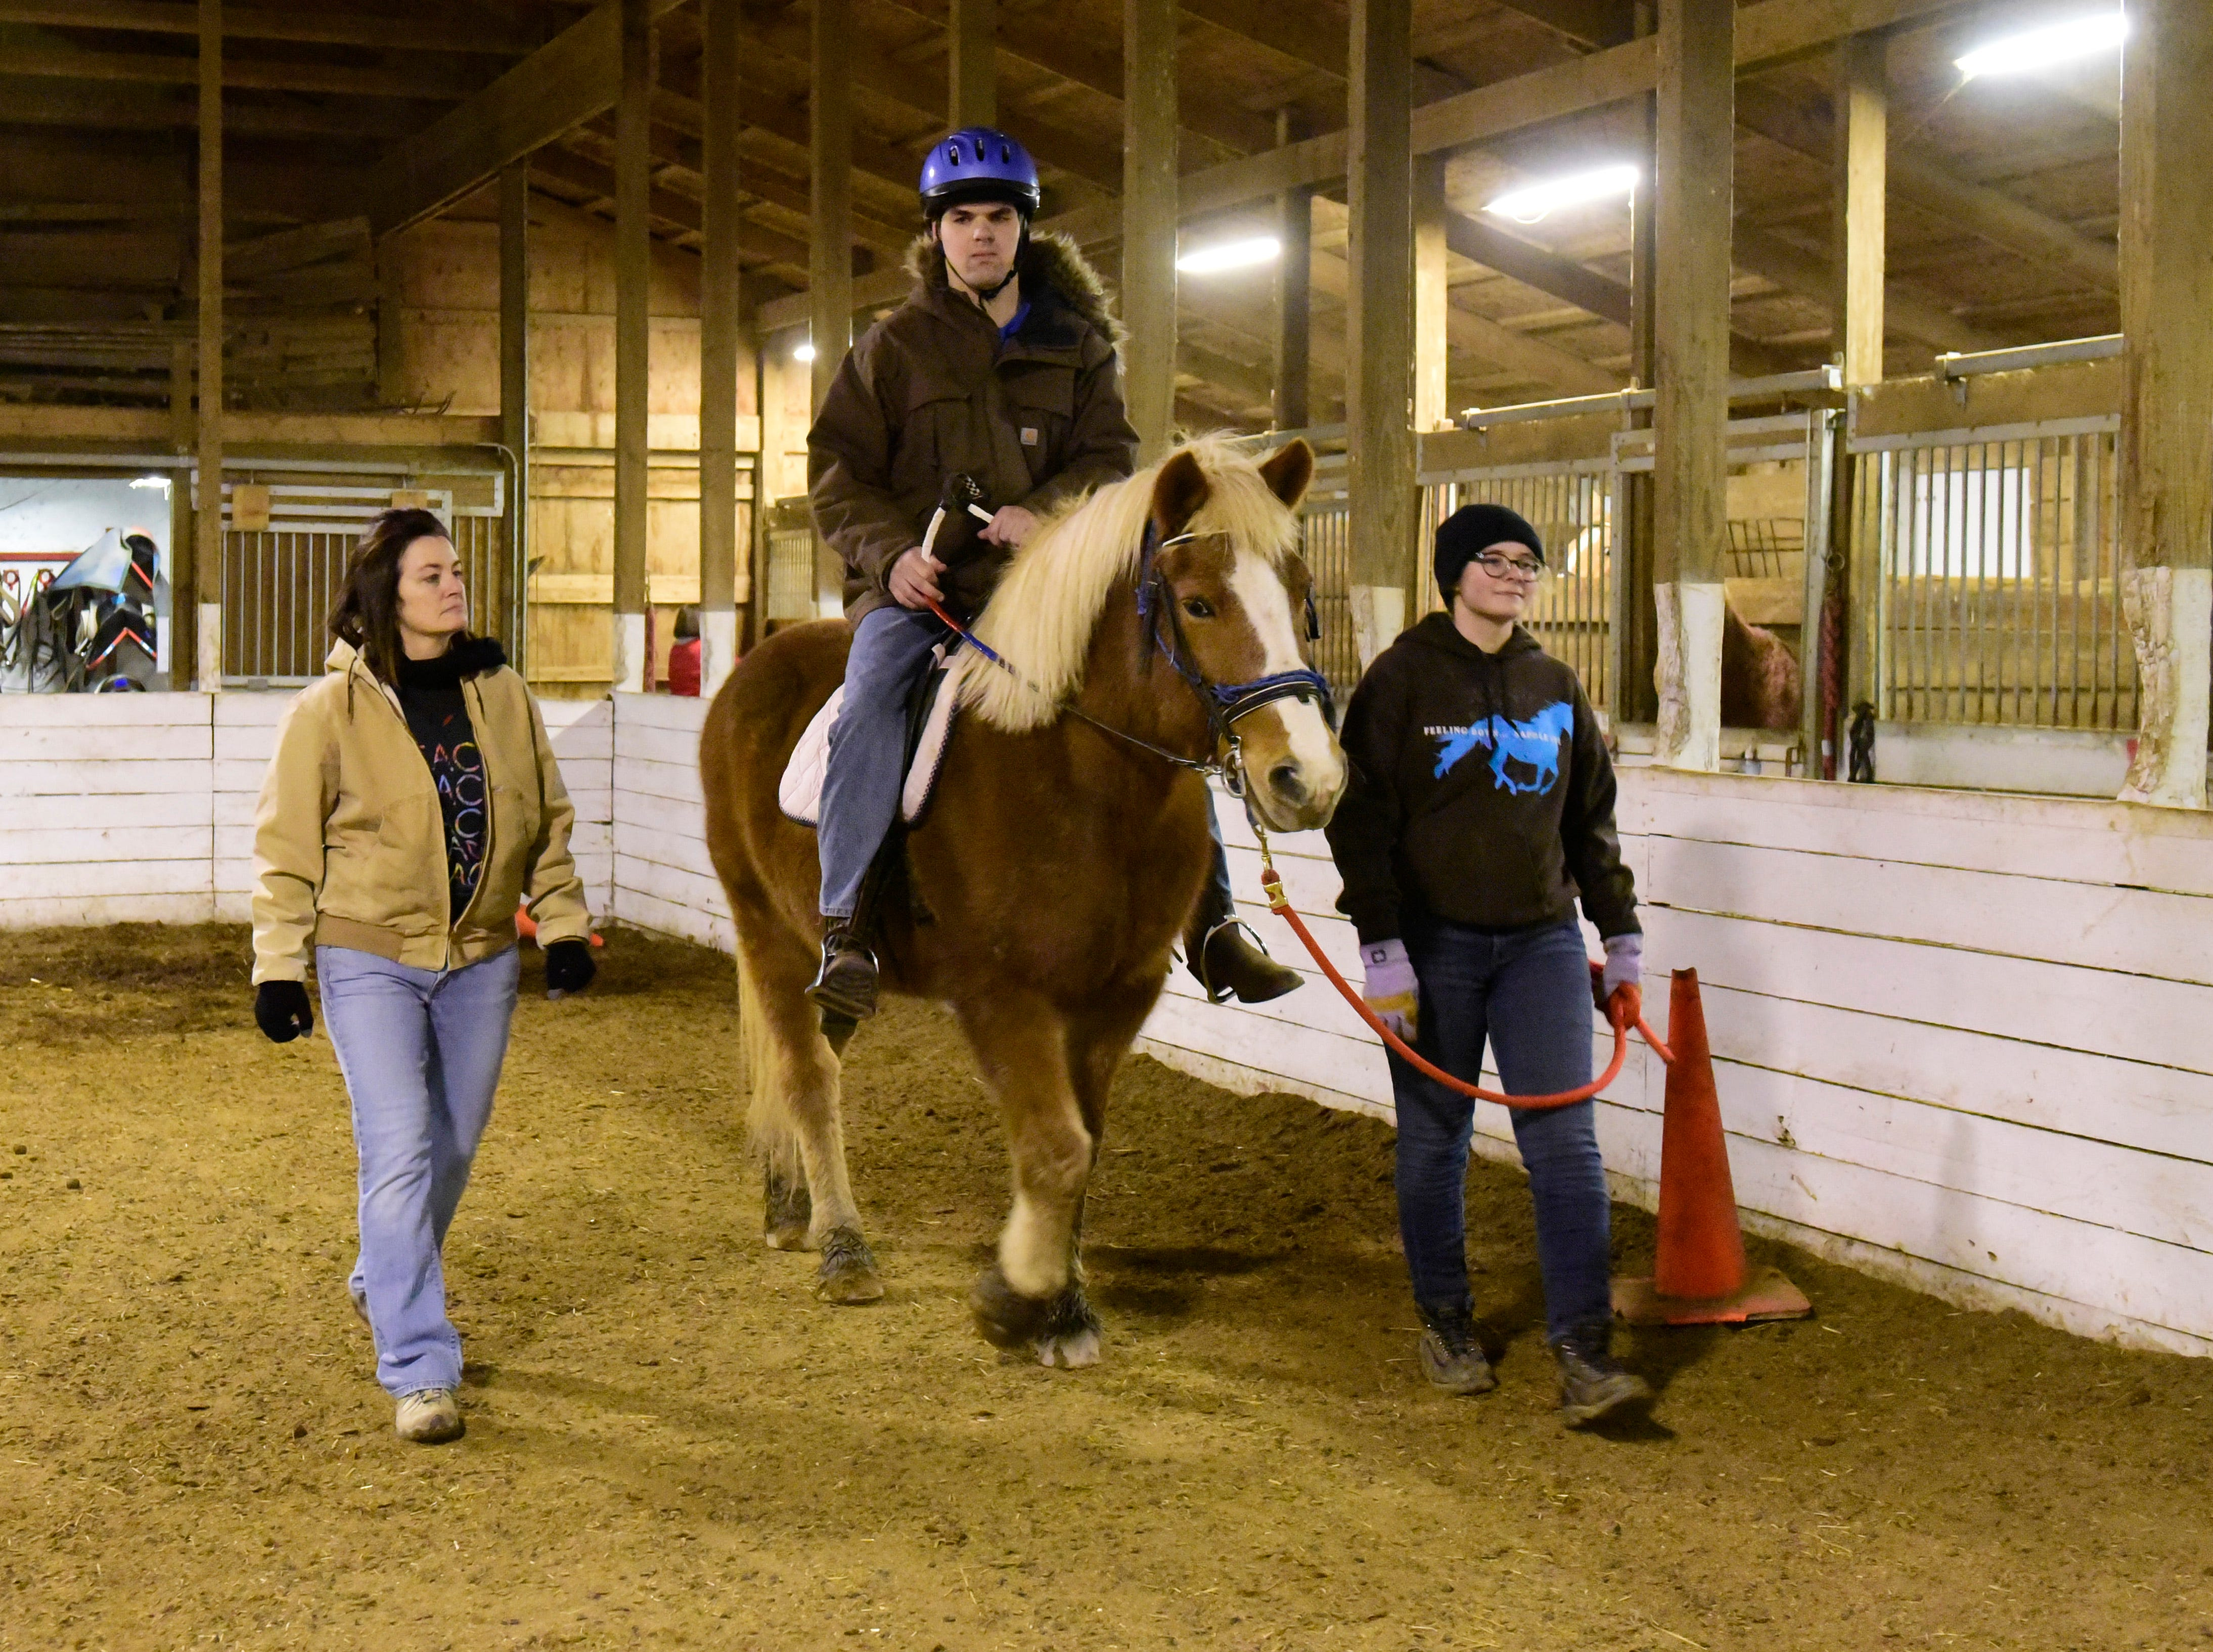 T.J. Stricker, 28, of Helena, middle, rides with the help of volunteers Trisha Tallman, left, and Ava Van Ness, right. He has cerebral palsy and is nonverbal.